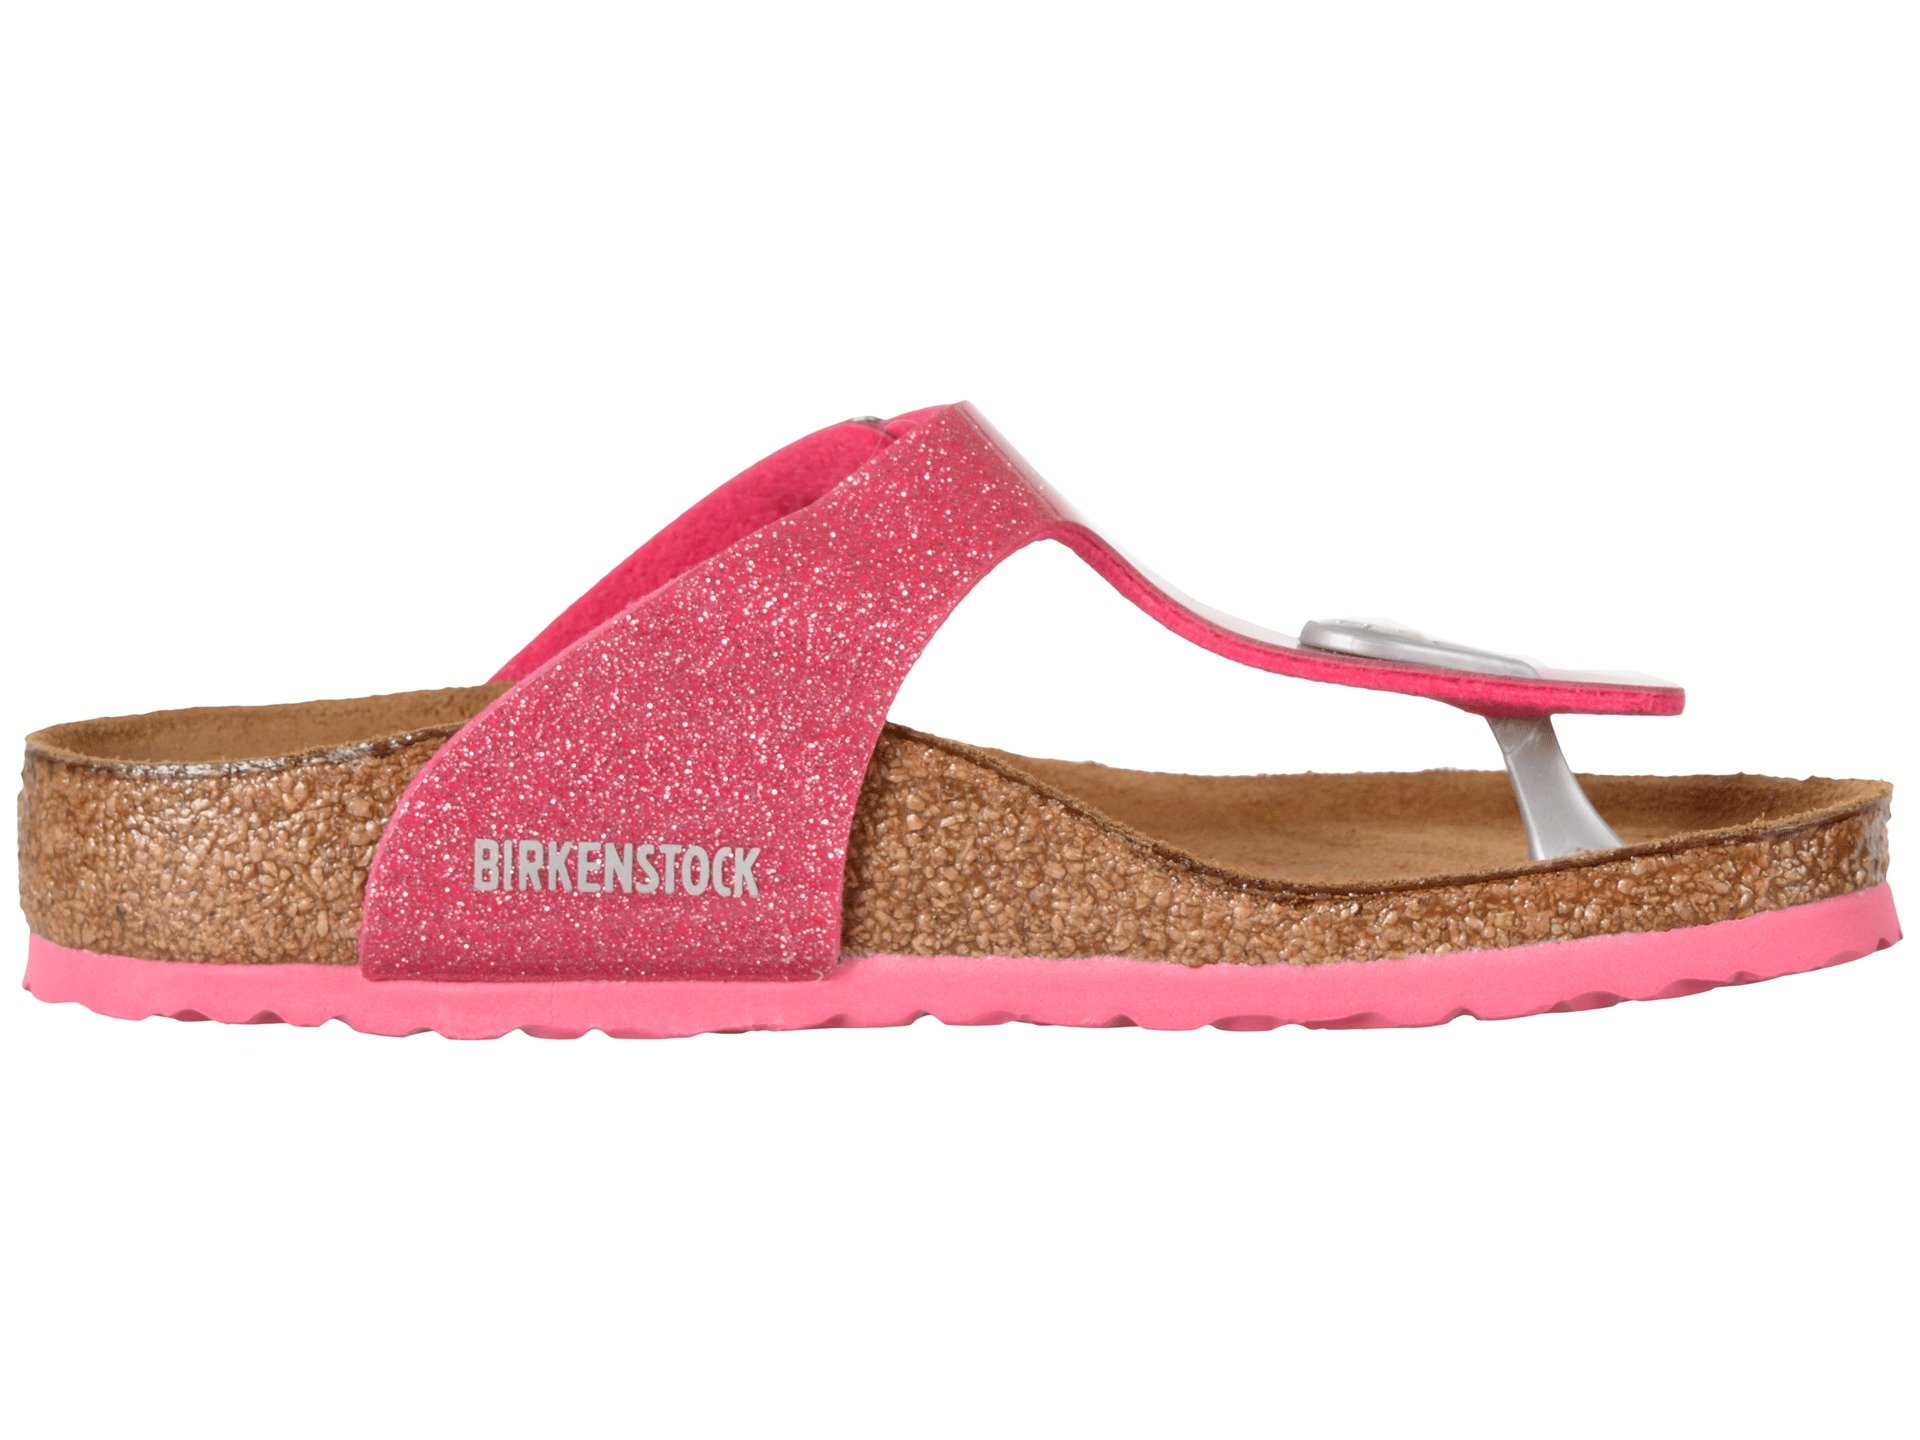 5c61687c1468 Birkenstock Dealers Usa Insole With Metatarsal Pad